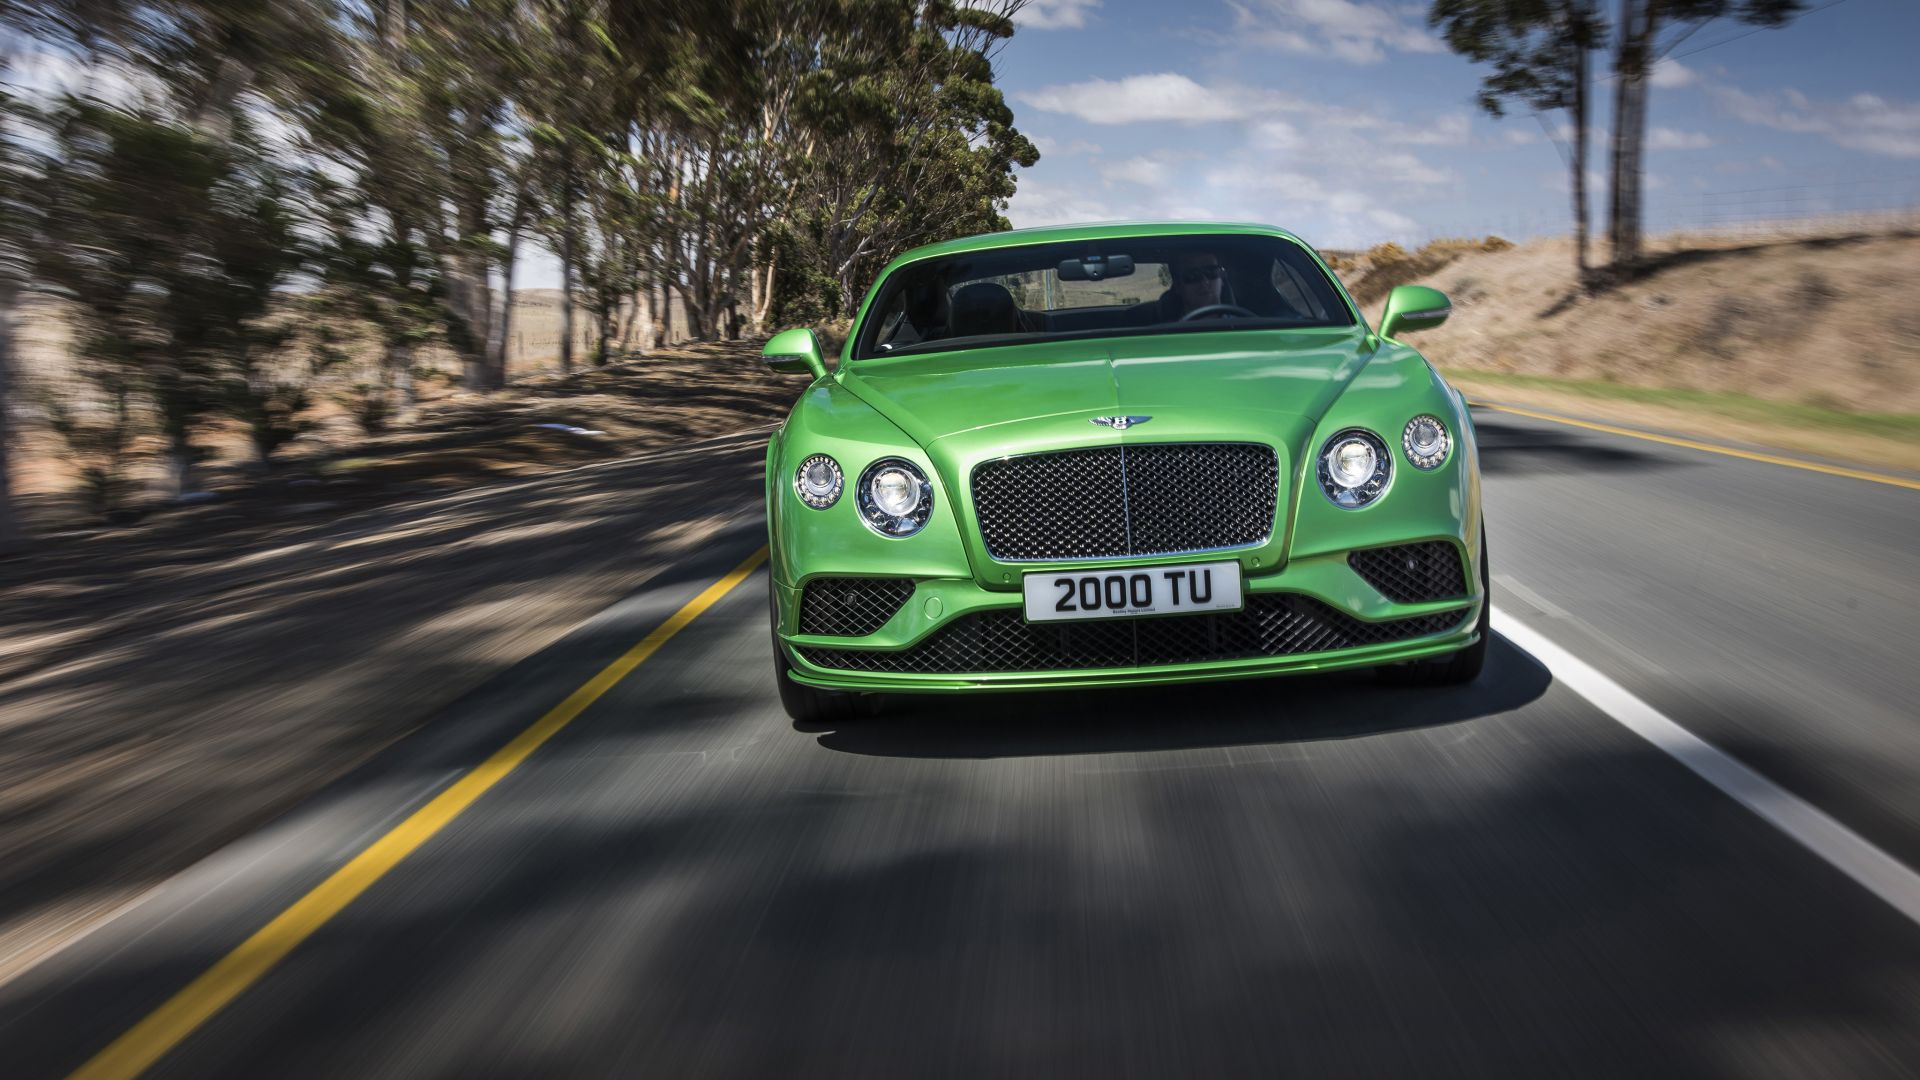 bentley continental gt speed, coupe, luxery, green. (horizontal)